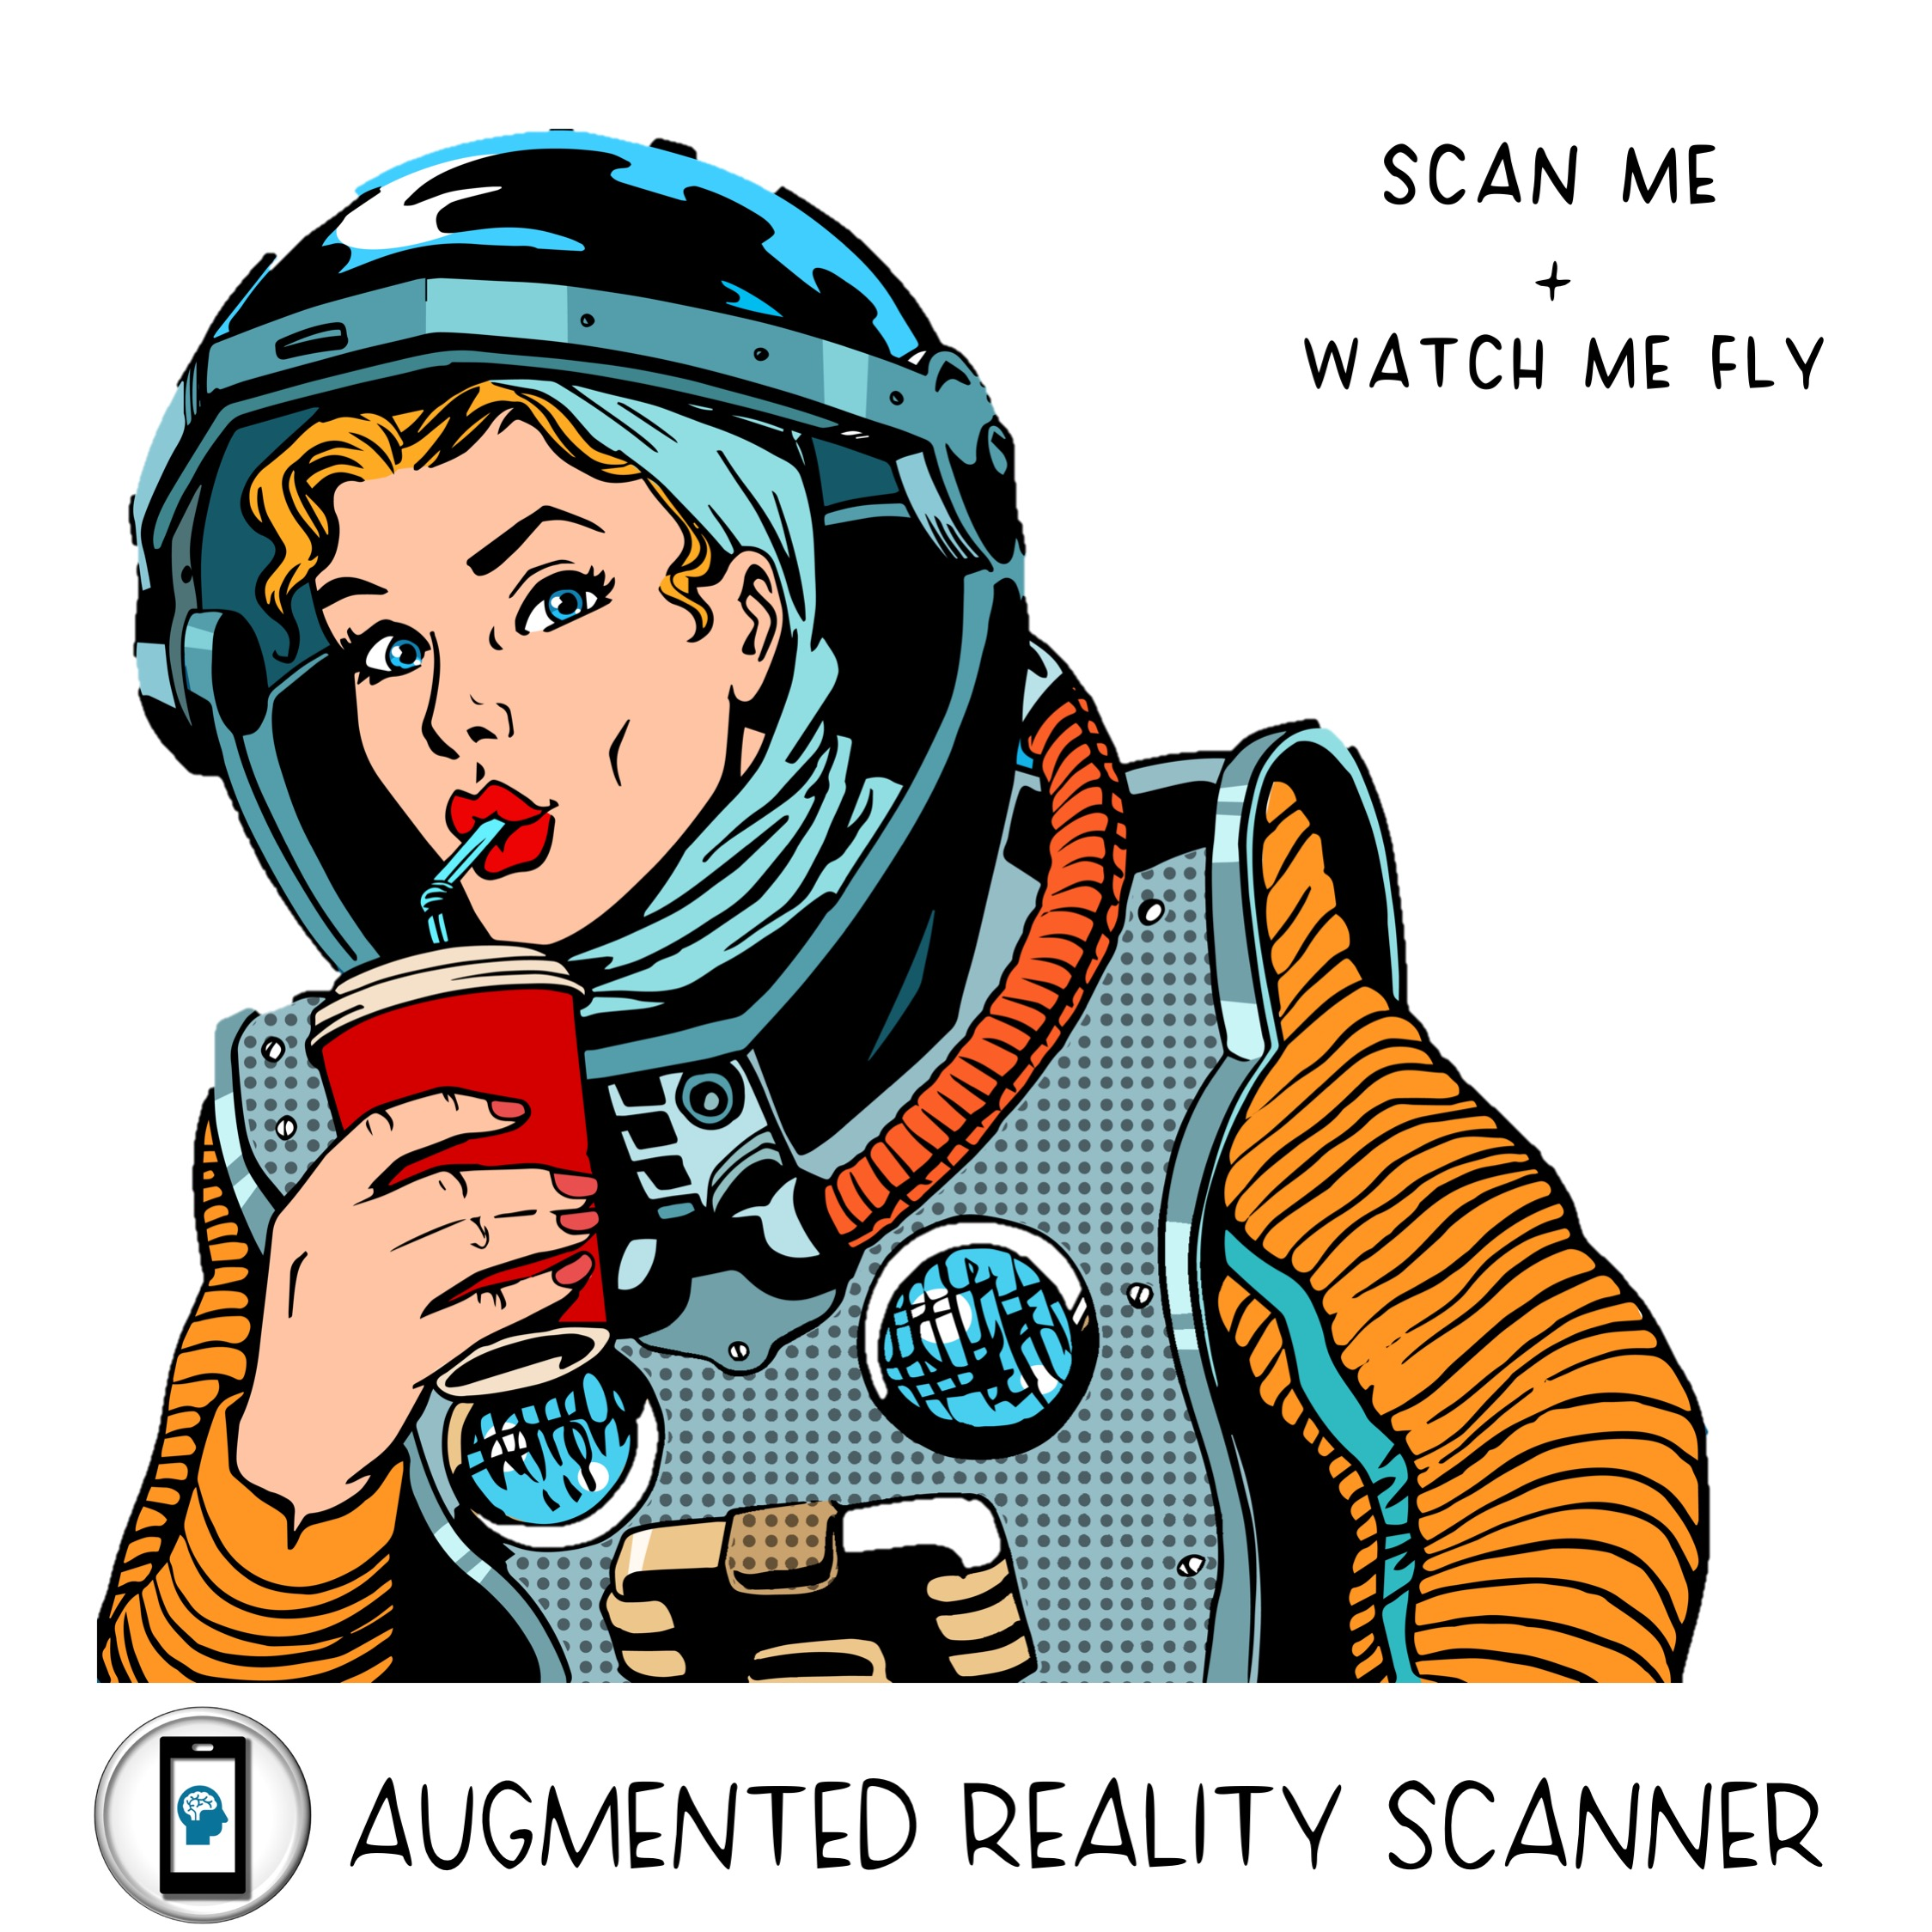 whatch me fly instagram and ar.jpg